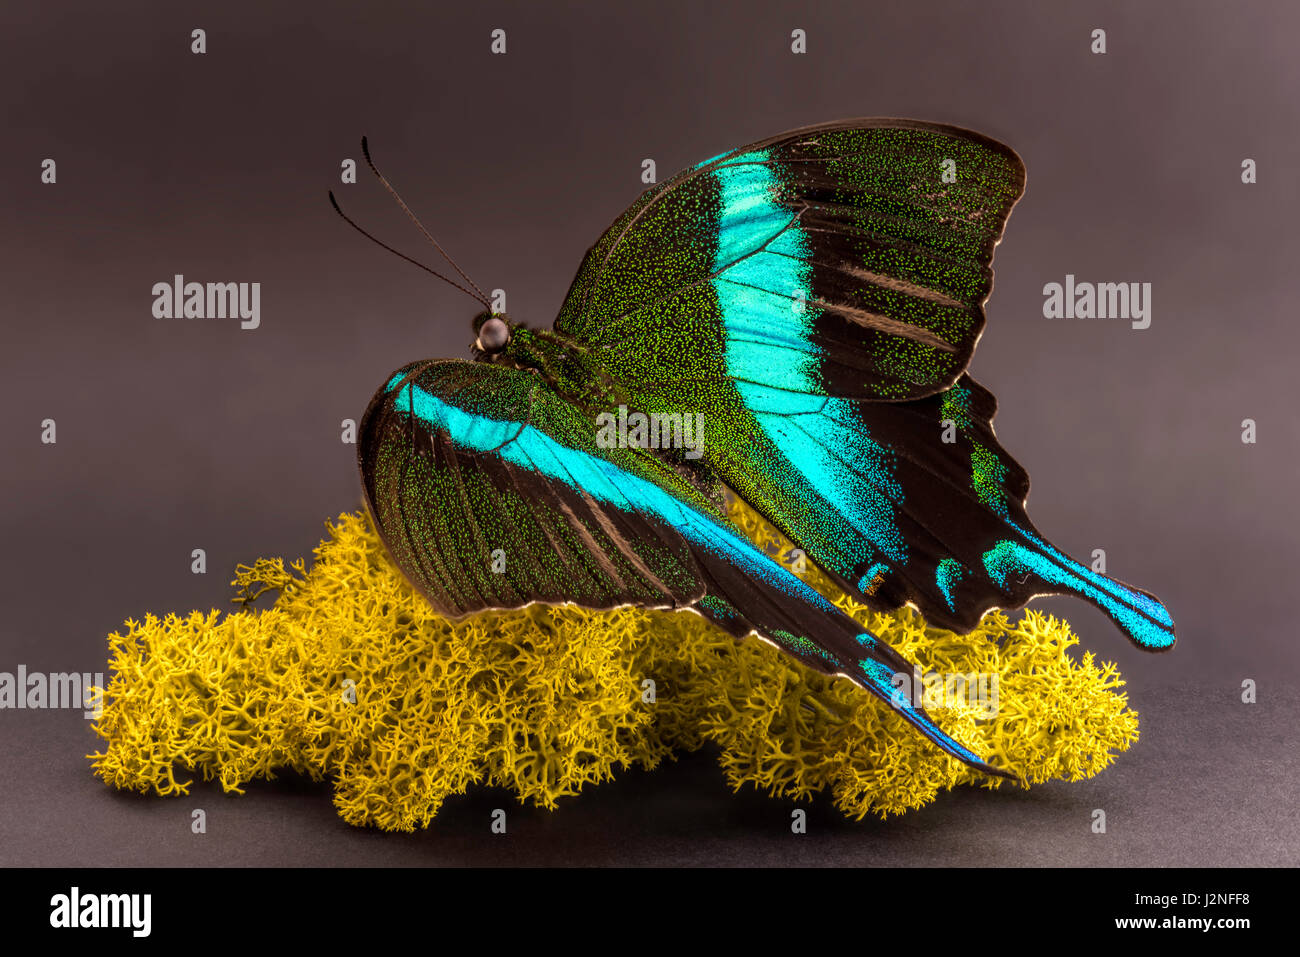 Sulawesi Peacock Butterfly (Papilio blumei) specimen set on Finnish moss, spot lit and isolated against studio background. - Stock Image